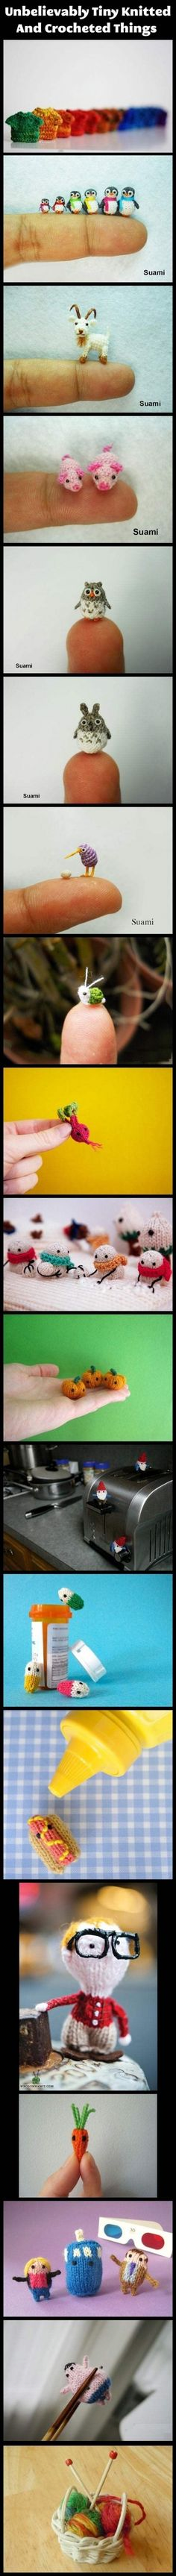 Unbelievably tiny knitted things